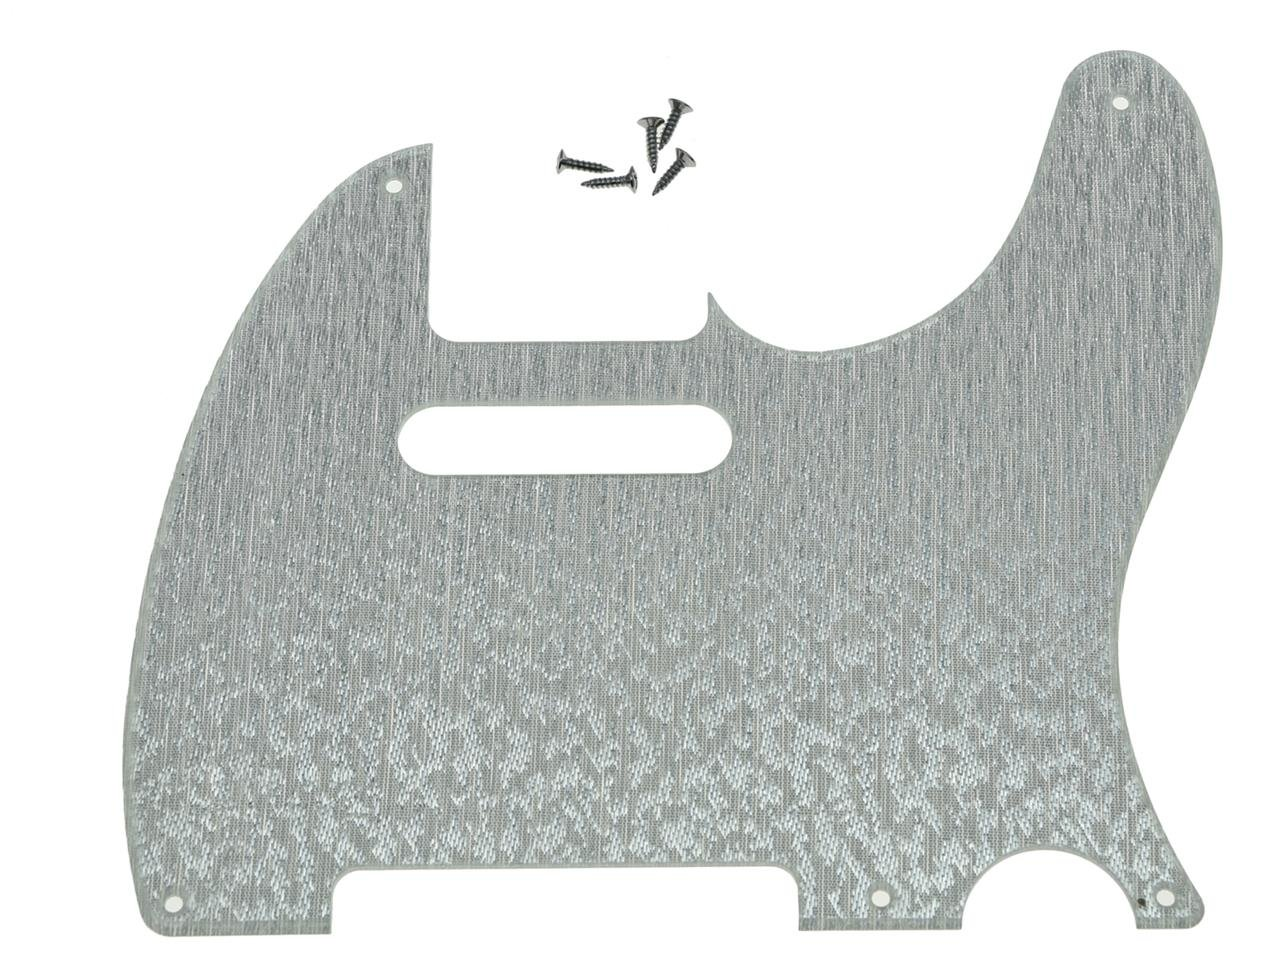 KAISH 5 Hole Vintage Tele Guitar Pickguard Scratch Plate fits USA//Mexican Fender Telecaster Glossy Black 1 Ply